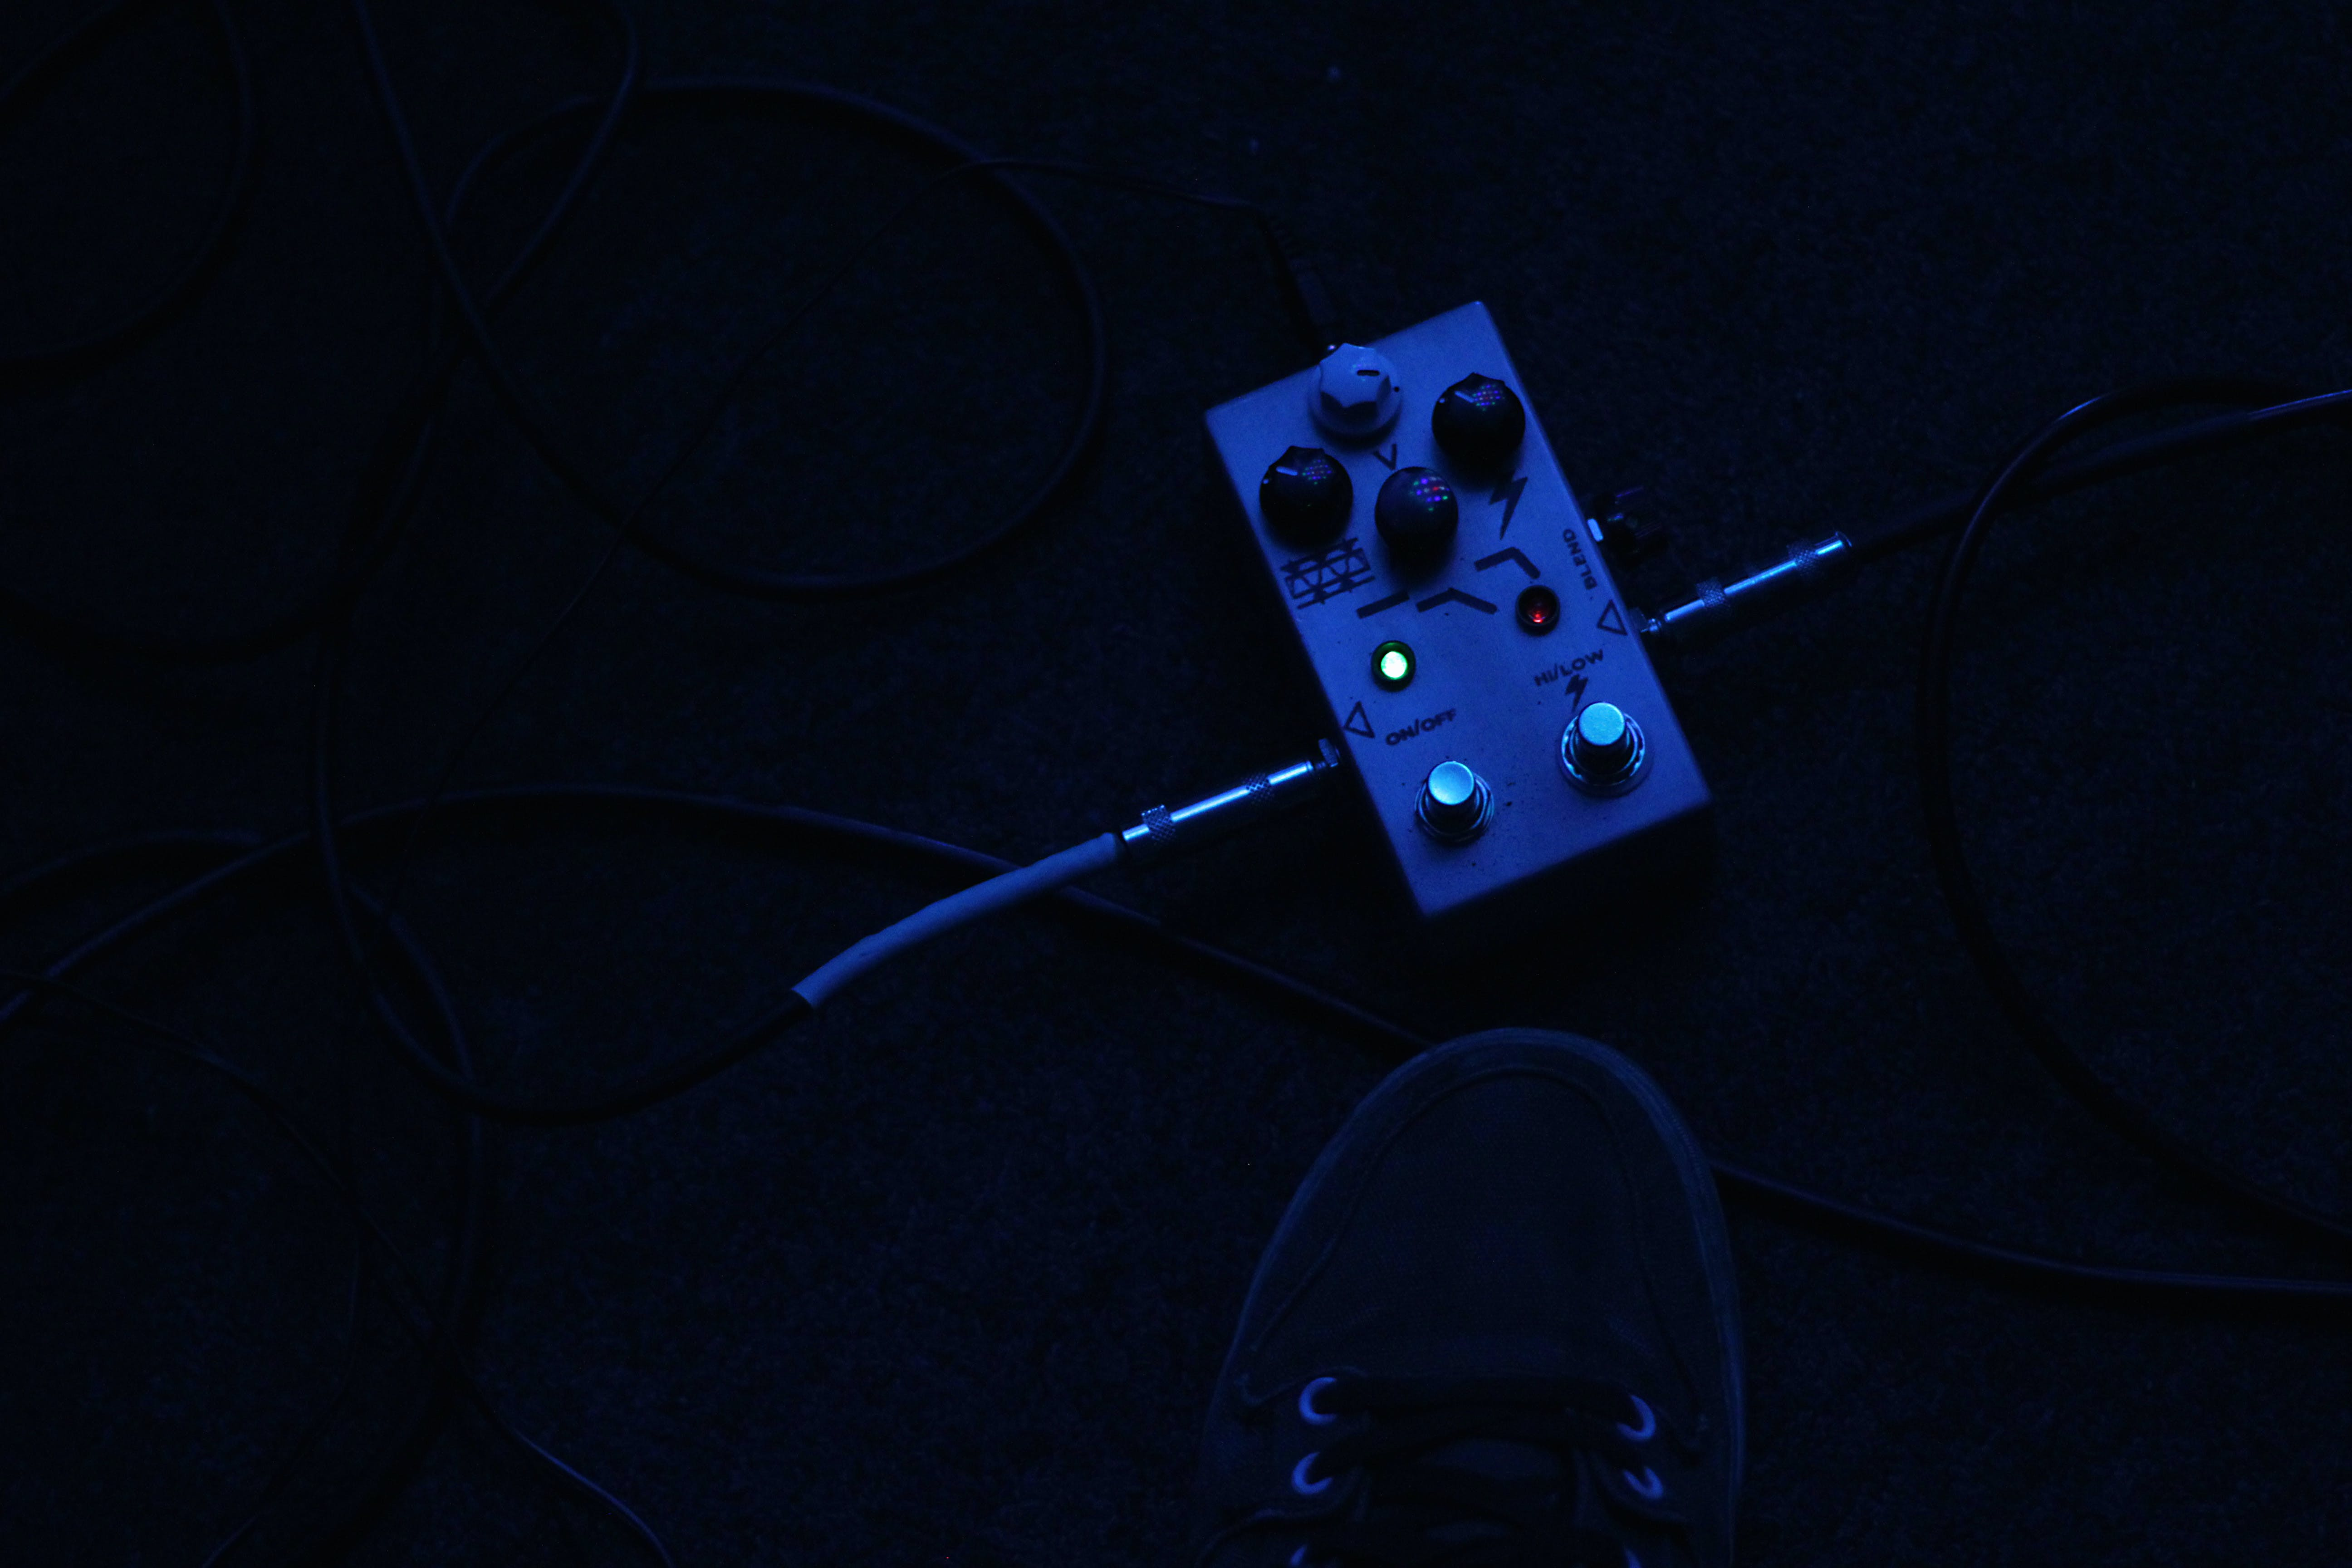 Free stock photo of music, guitar, pedals, bass